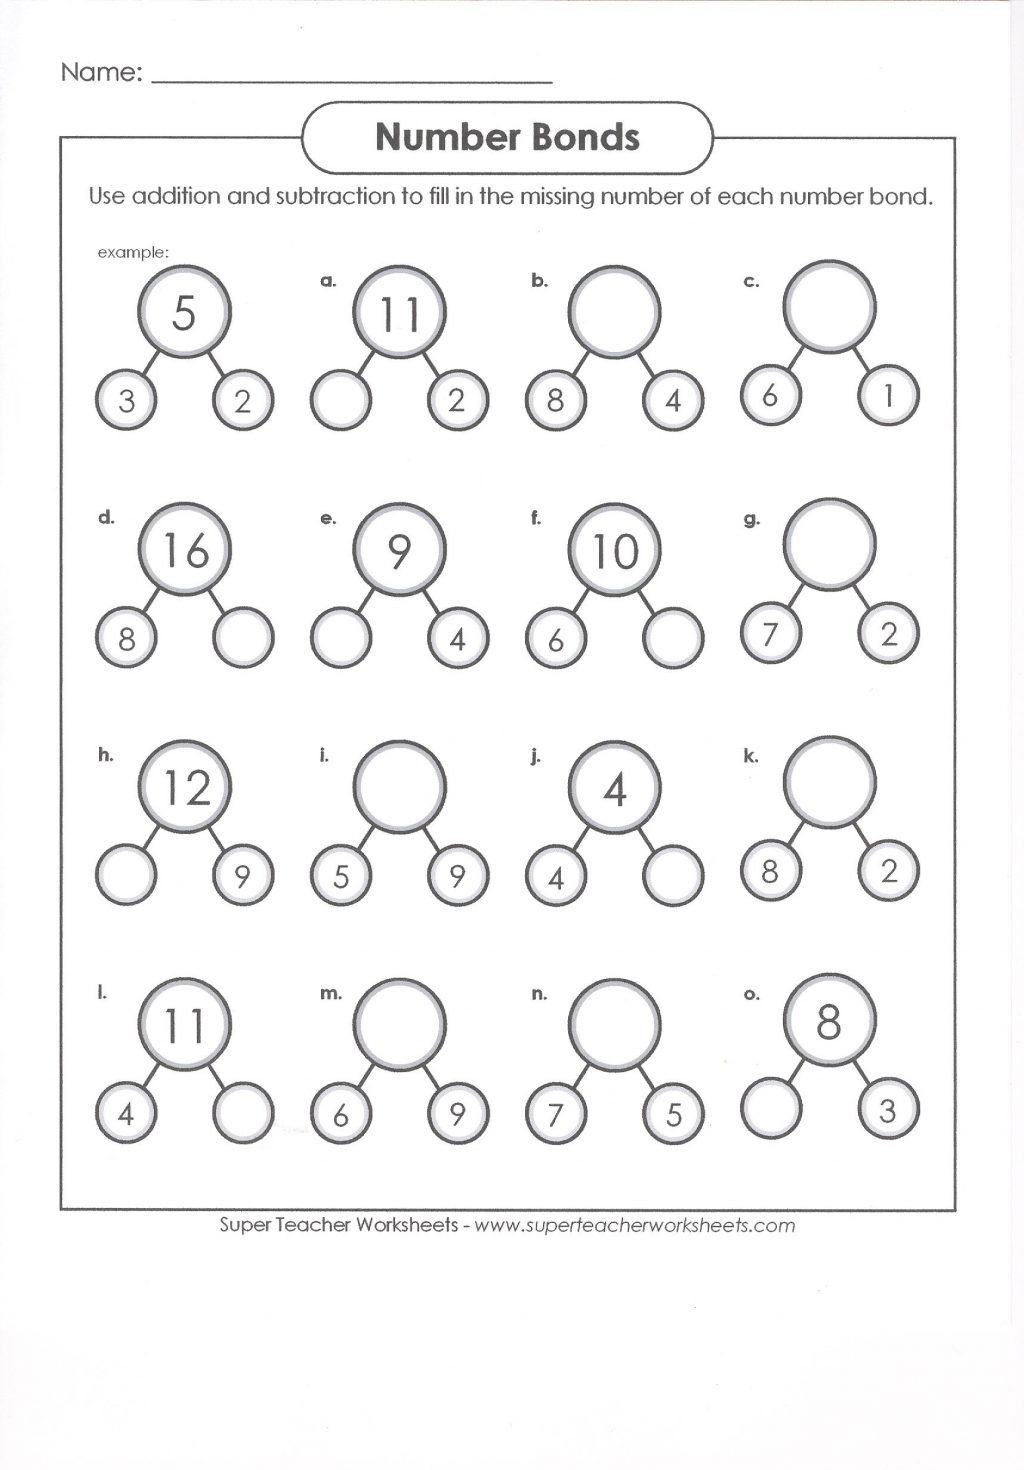 Number Bond Worksheets 2nd Grade Number Bonds Worksheet Generator